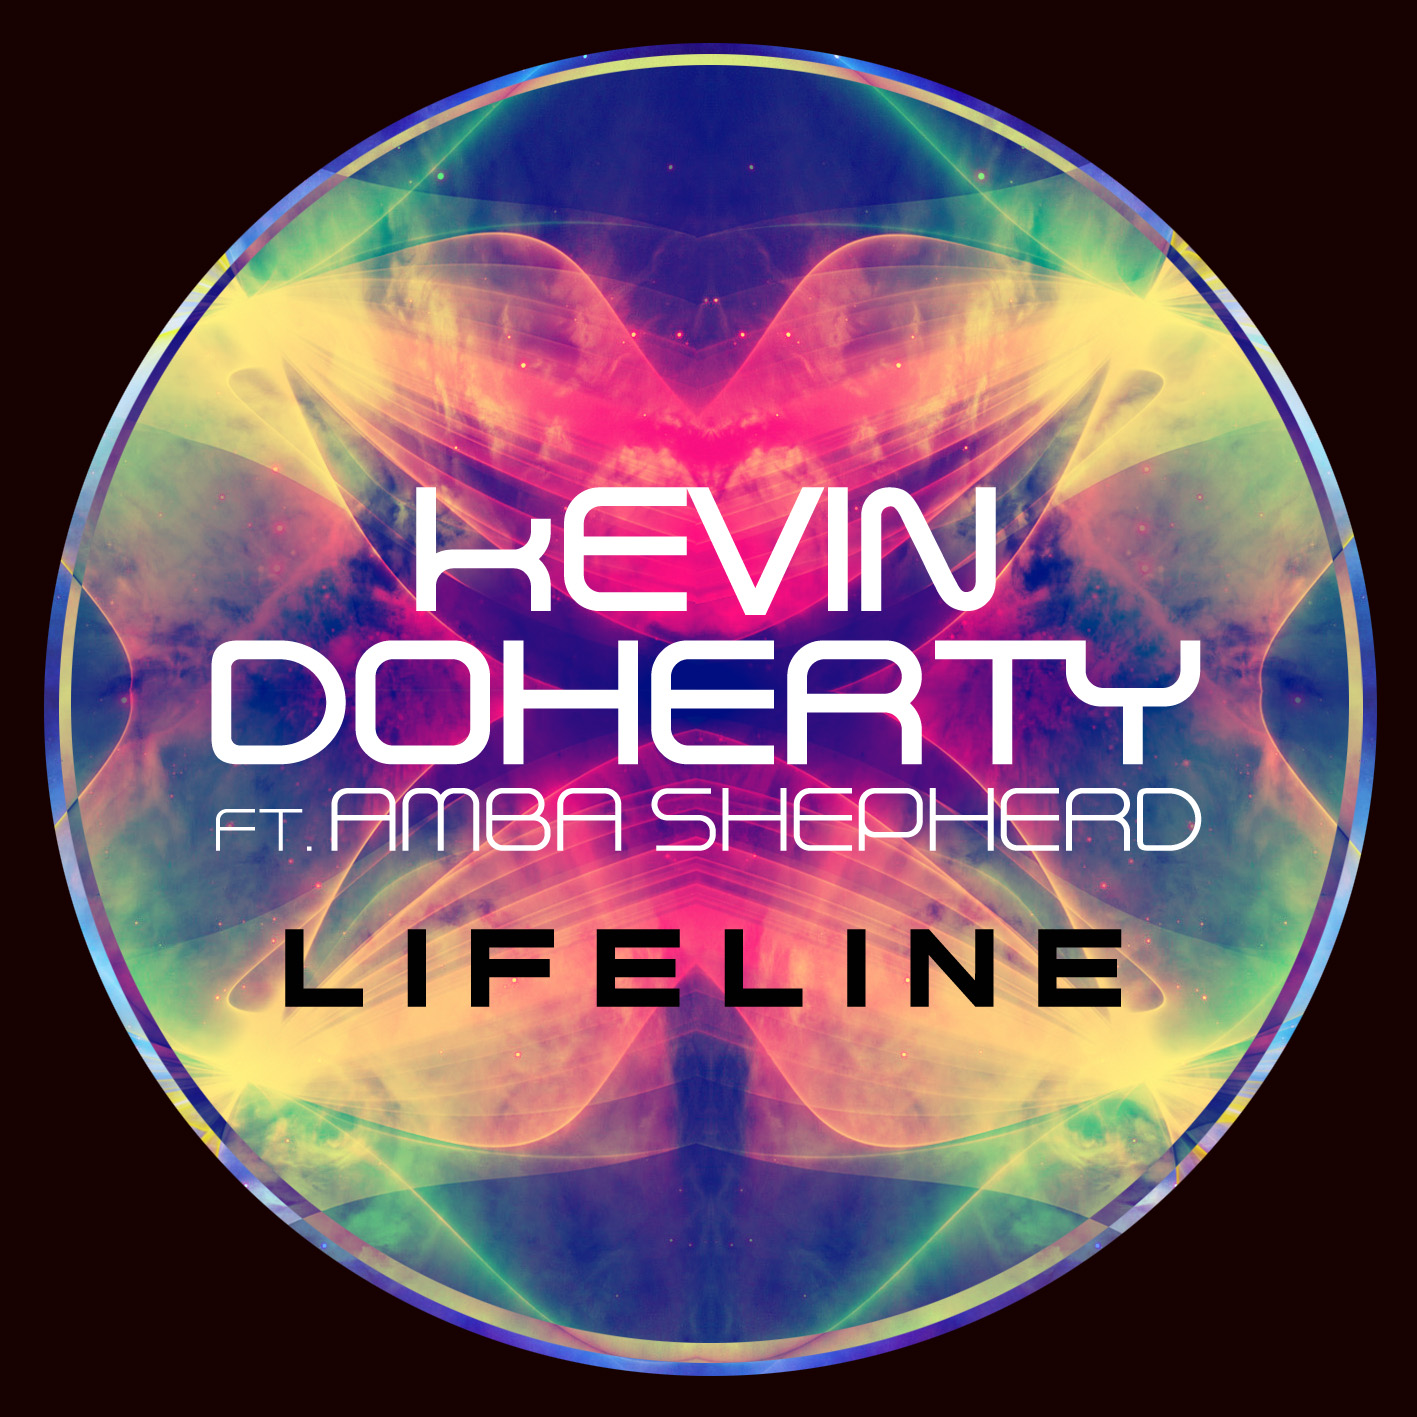 Kevin Doherty feat. Amba Shepherd – Lifeline (Vocal Club Mix)